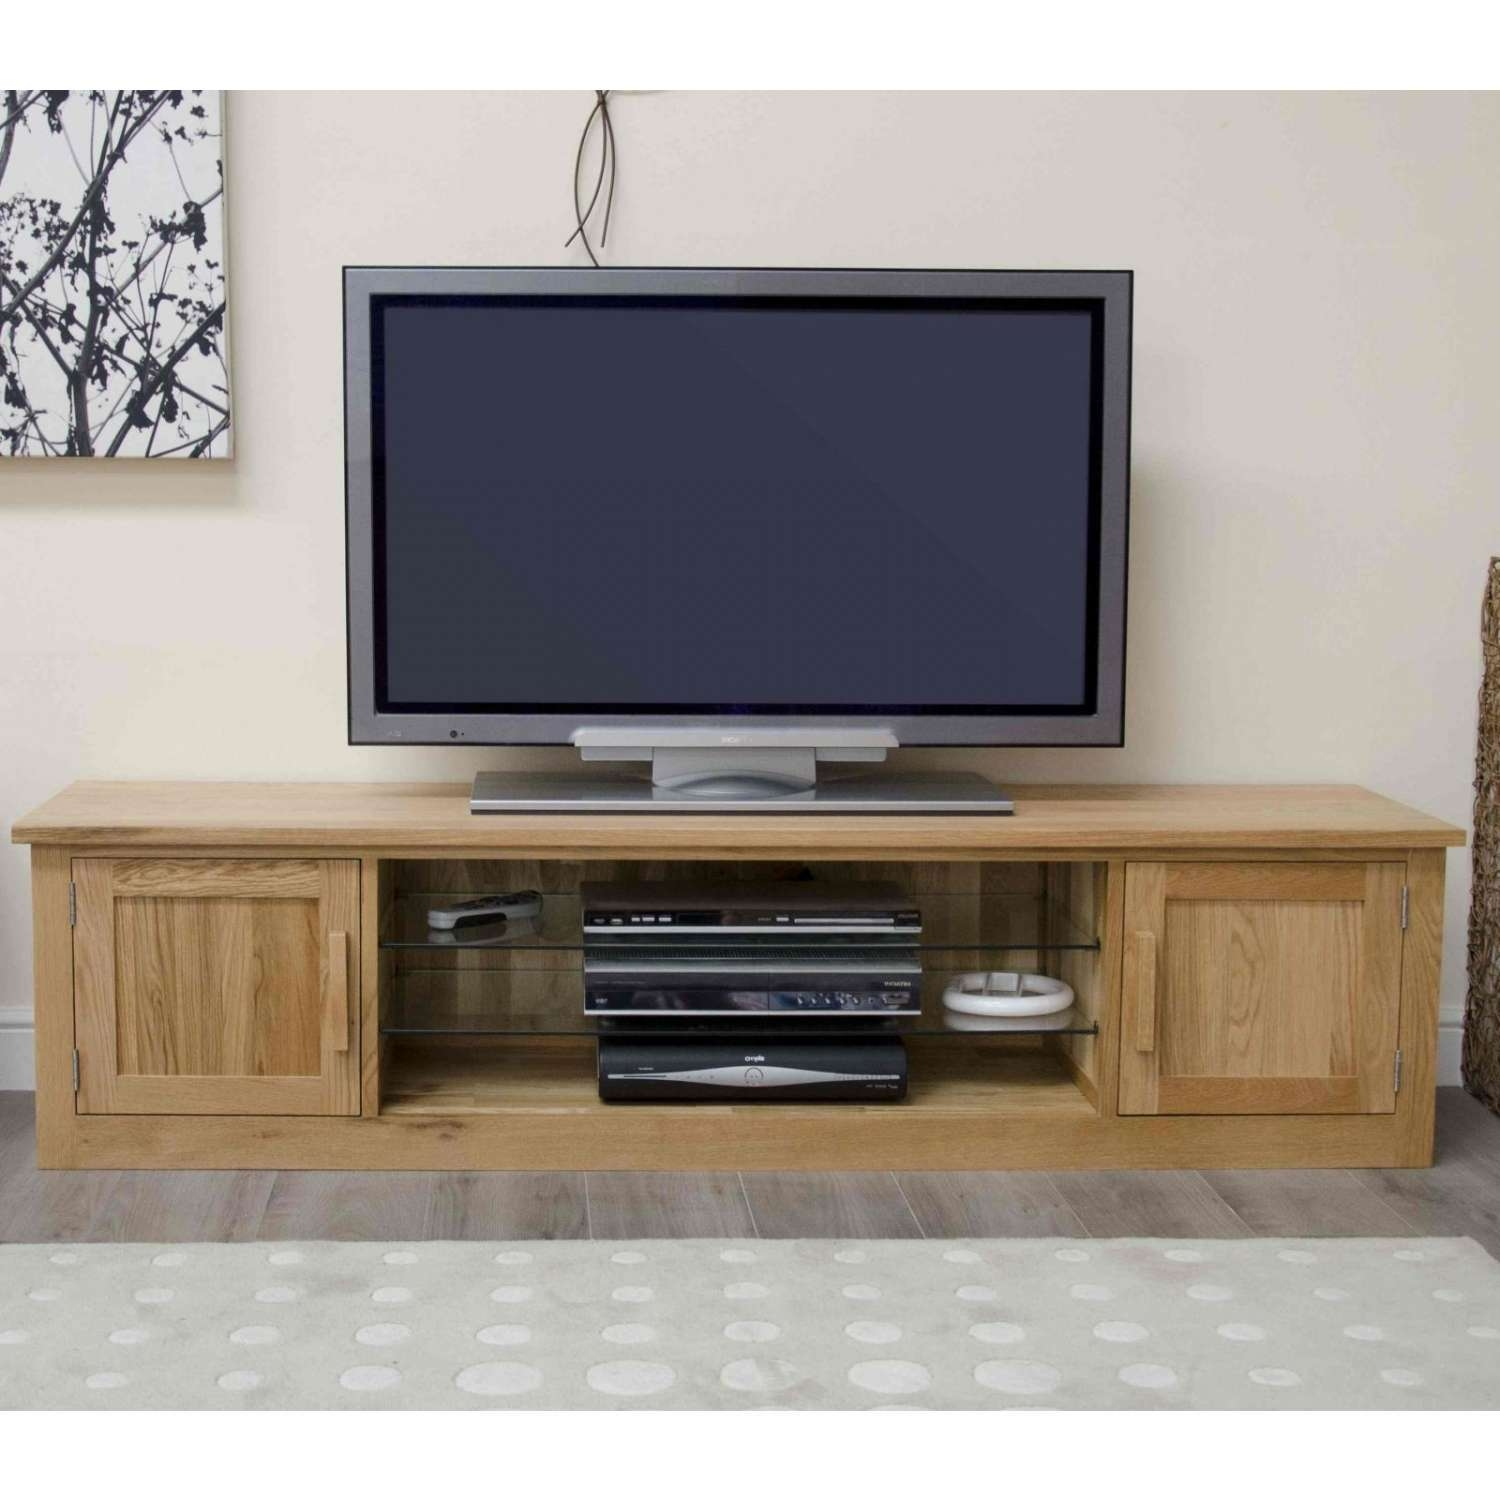 Arden Solid Oak Living Room Furniture Large Widescreen Tv Cabinet Intended For Solid Oak Tv Cabinets (View 8 of 20)